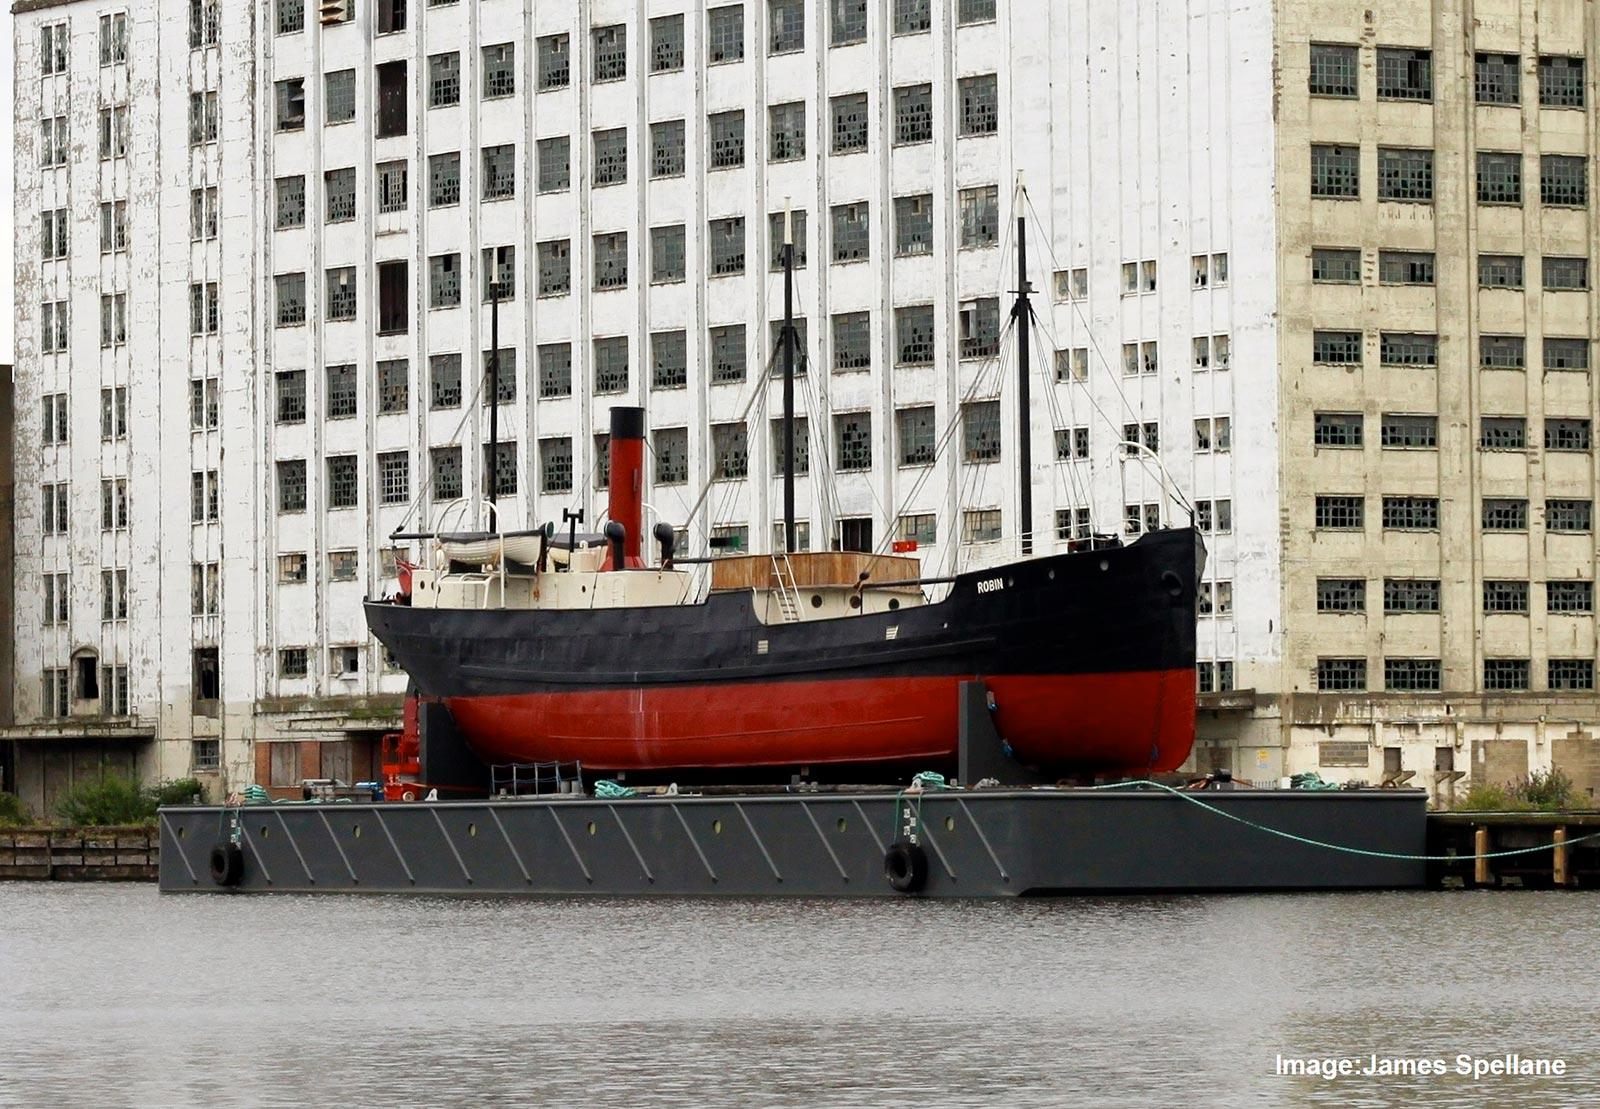 SS Robin in the Royal Docks